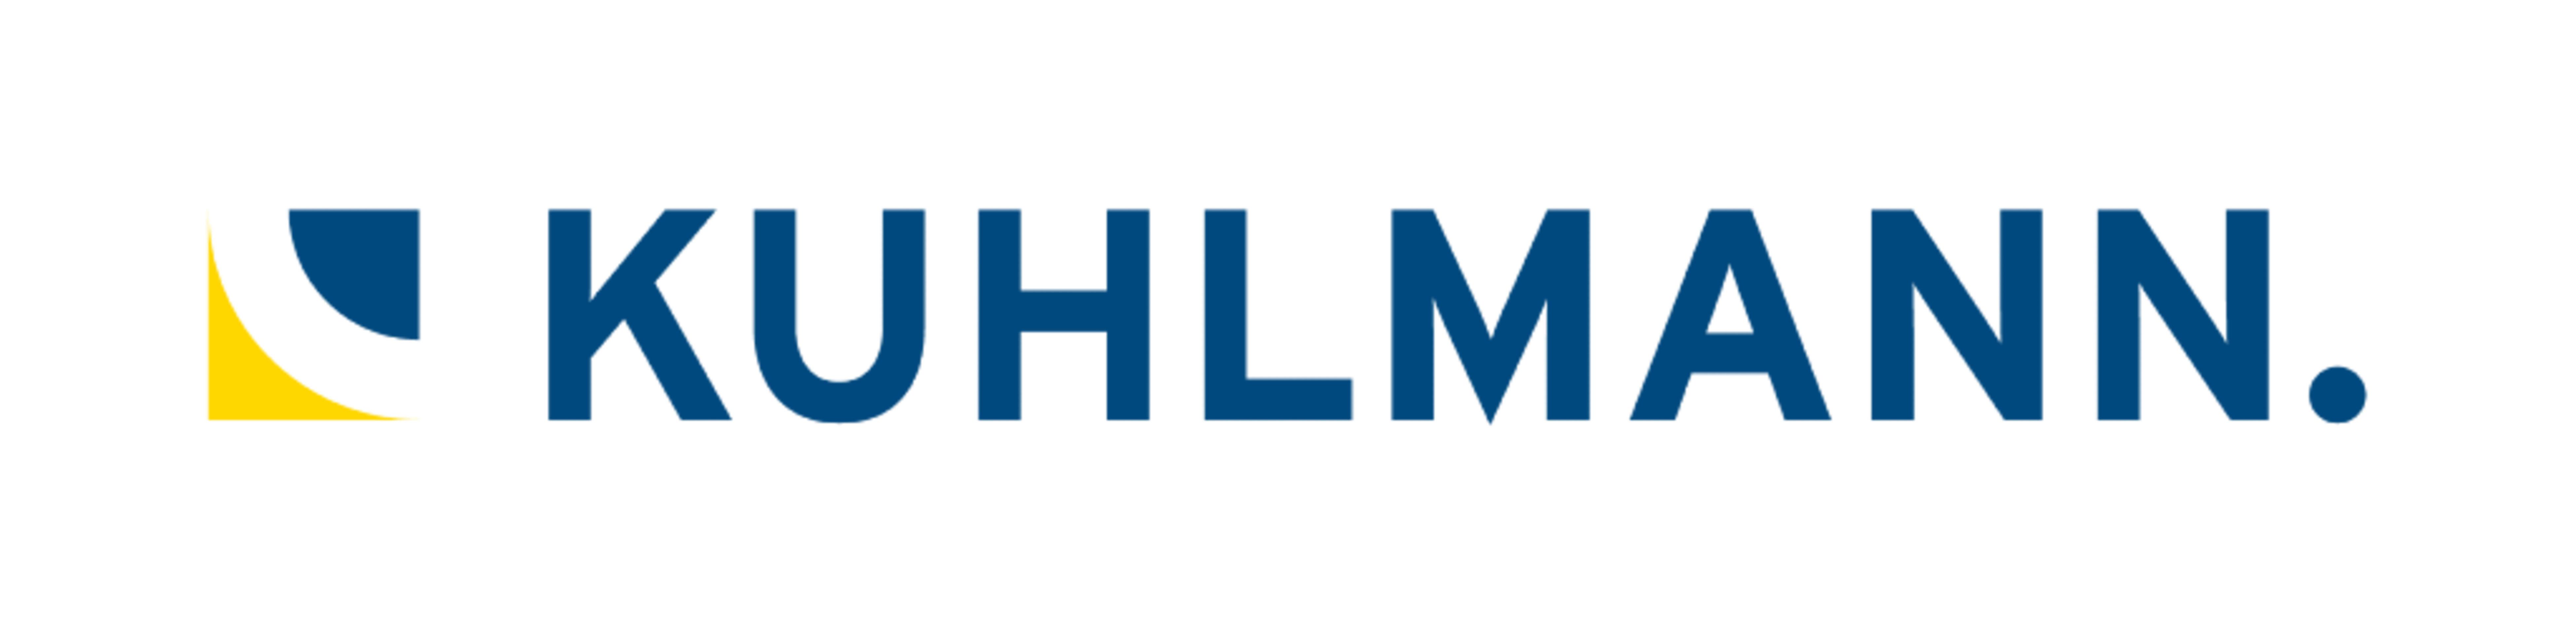 shows the logo from the company Kuhlmann Leitungsbau GmbH